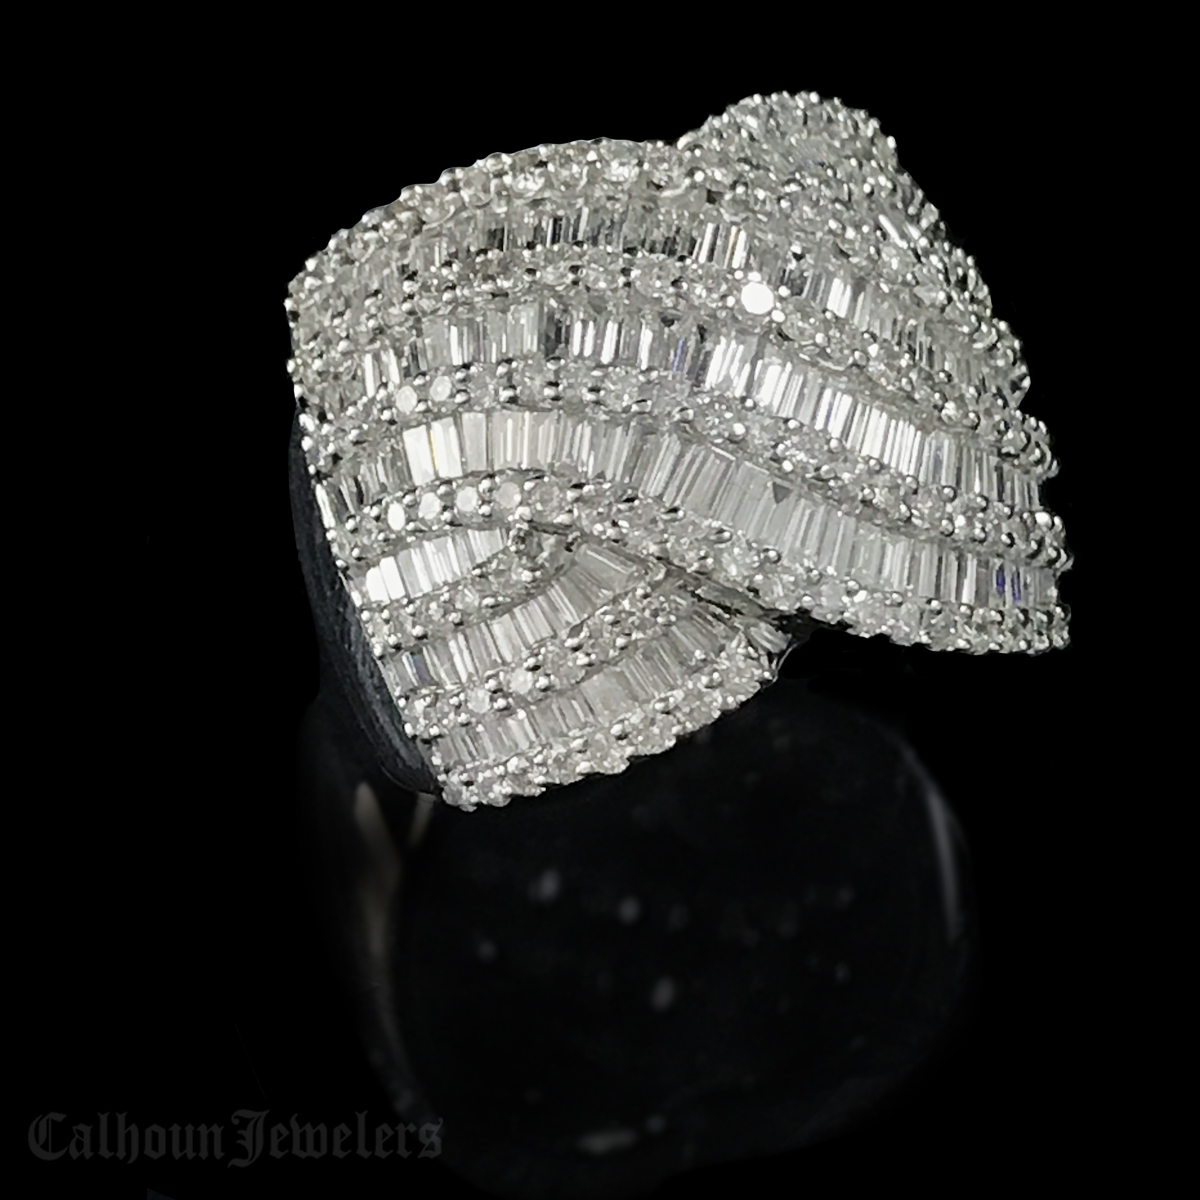 White Gold 18Kt. Diamond ring